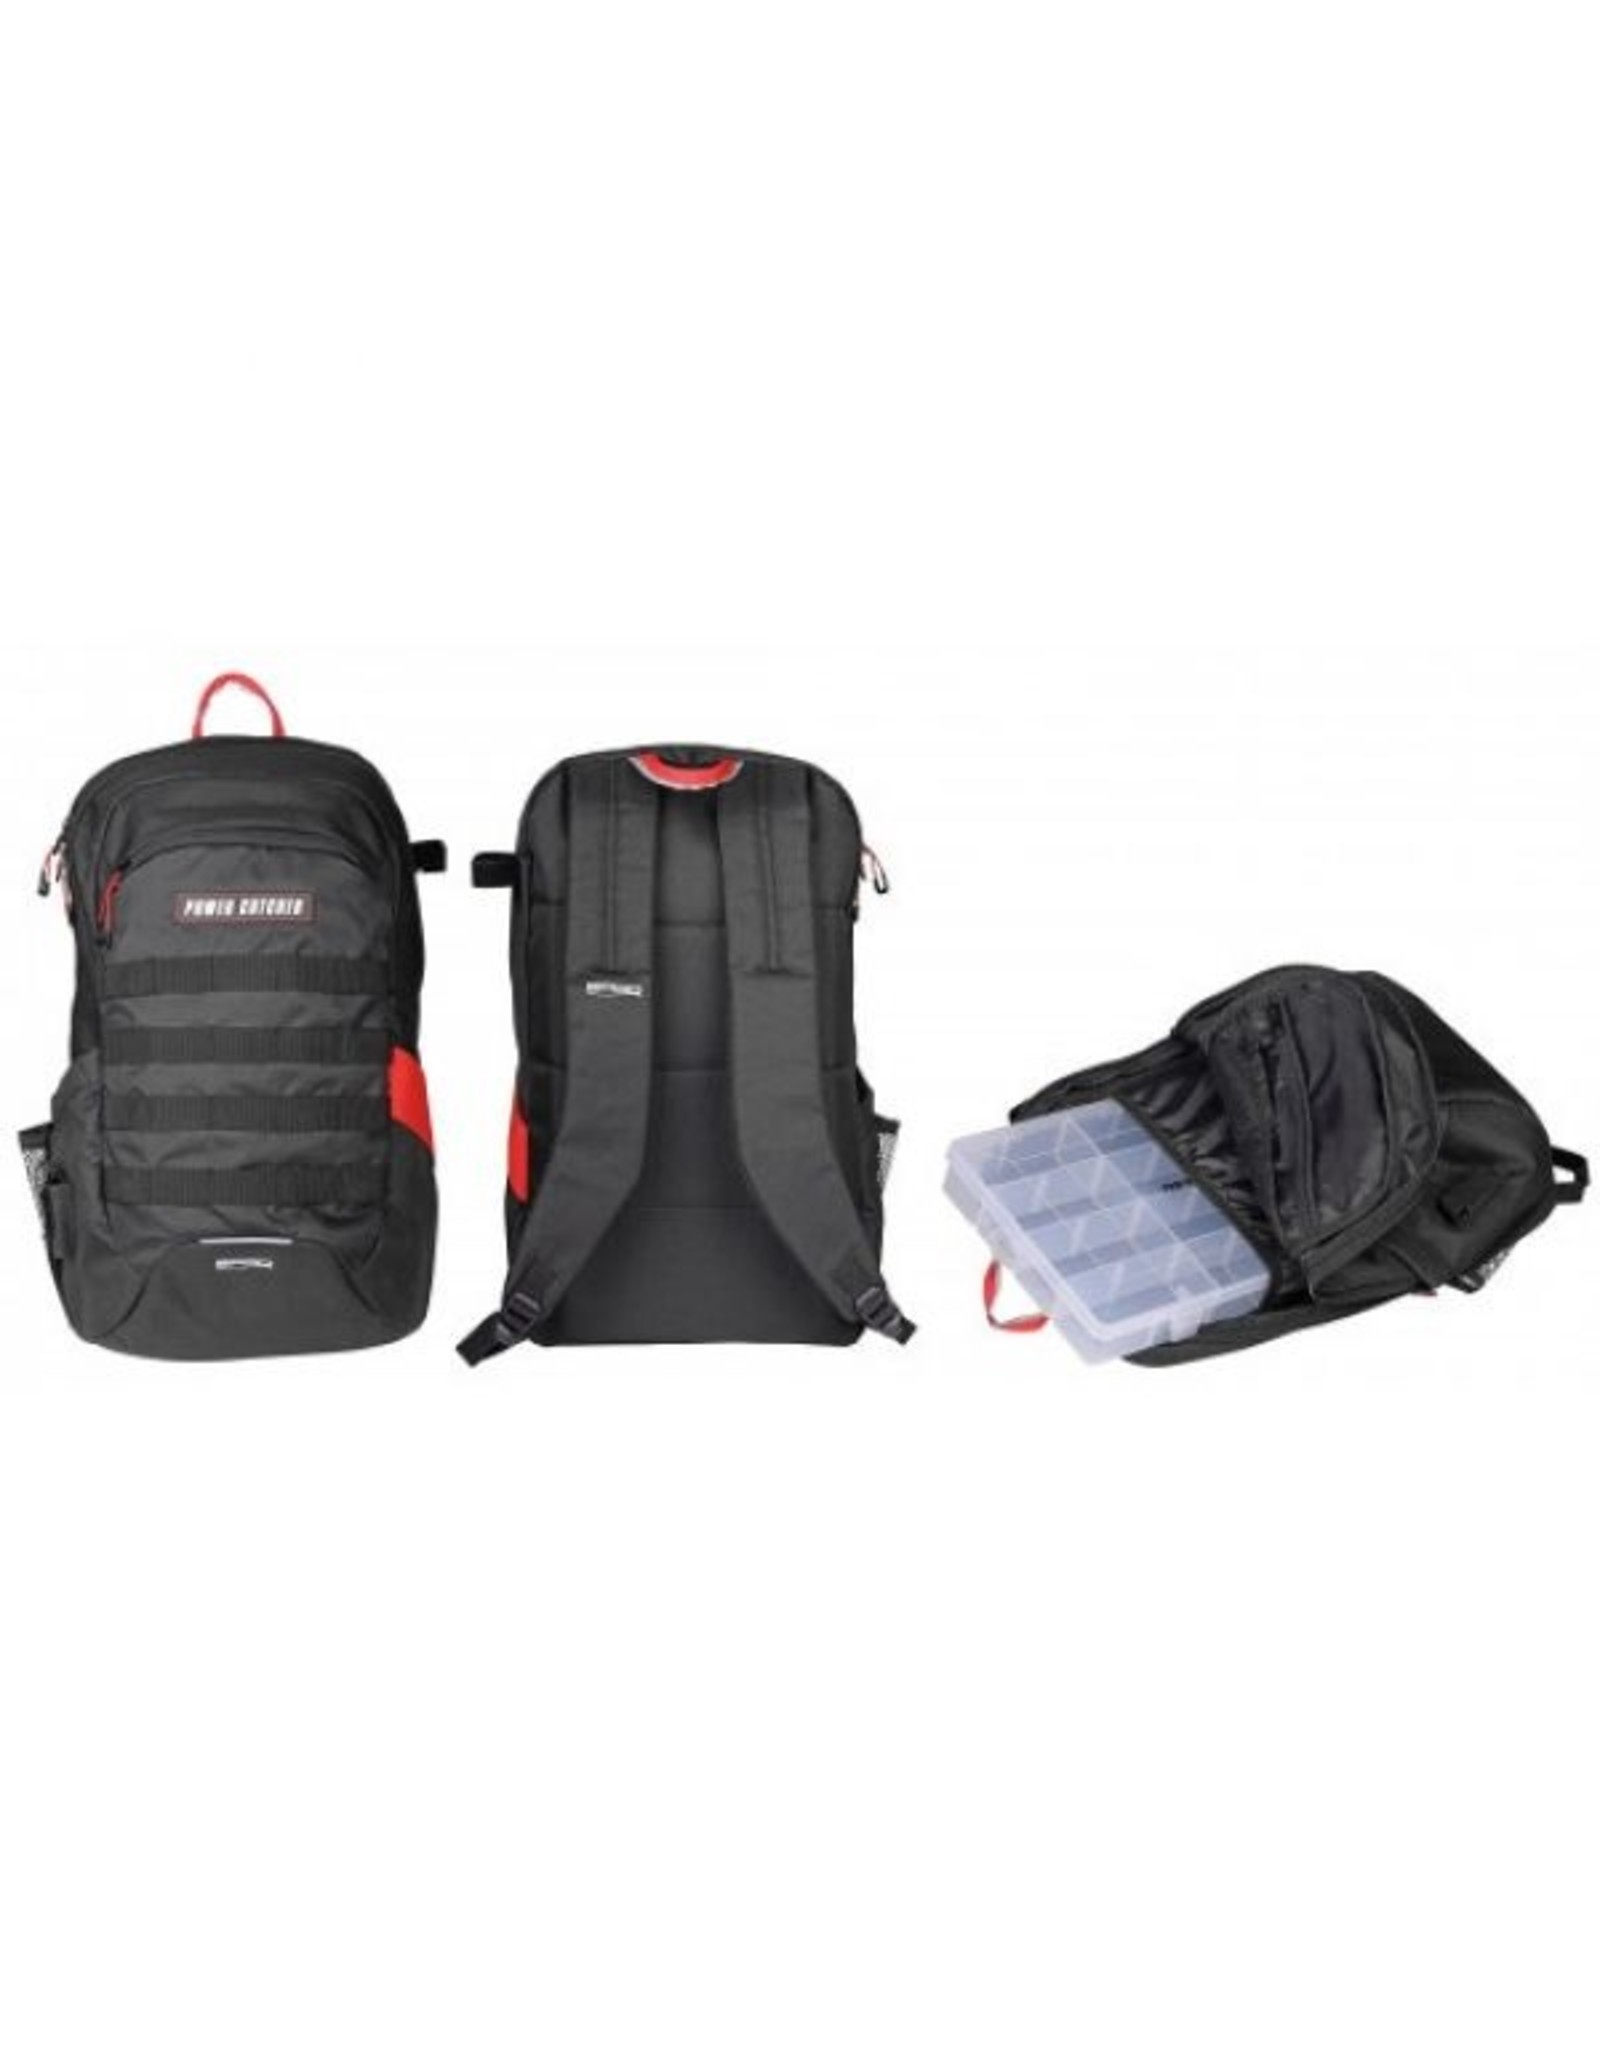 SPRO Powercatcher Backpack